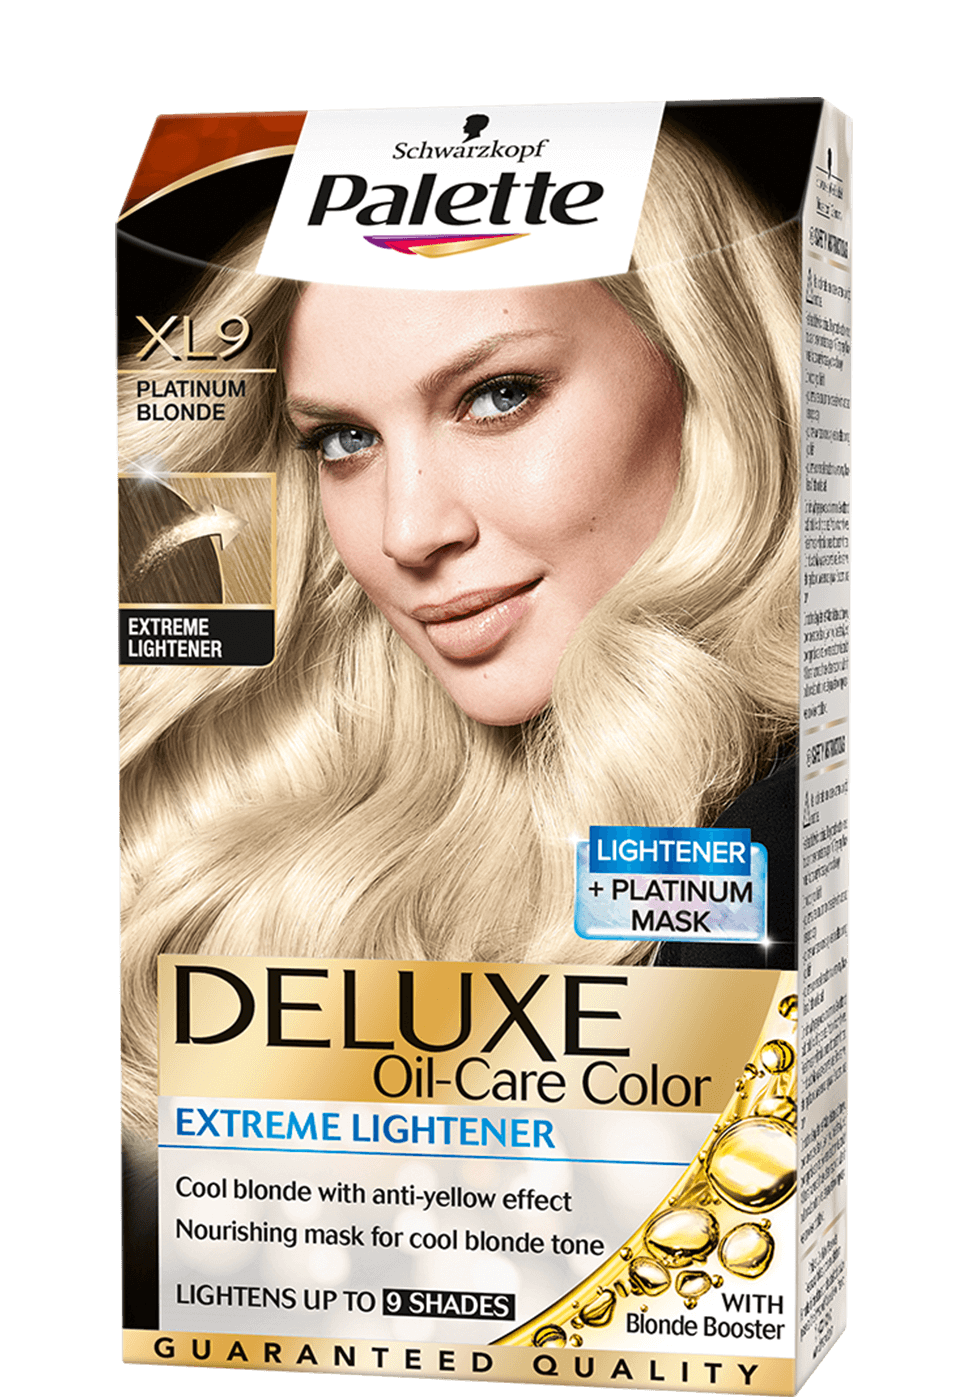 palette_com_dx_cool_blondes_xl9_platinum_blonde_970x1400